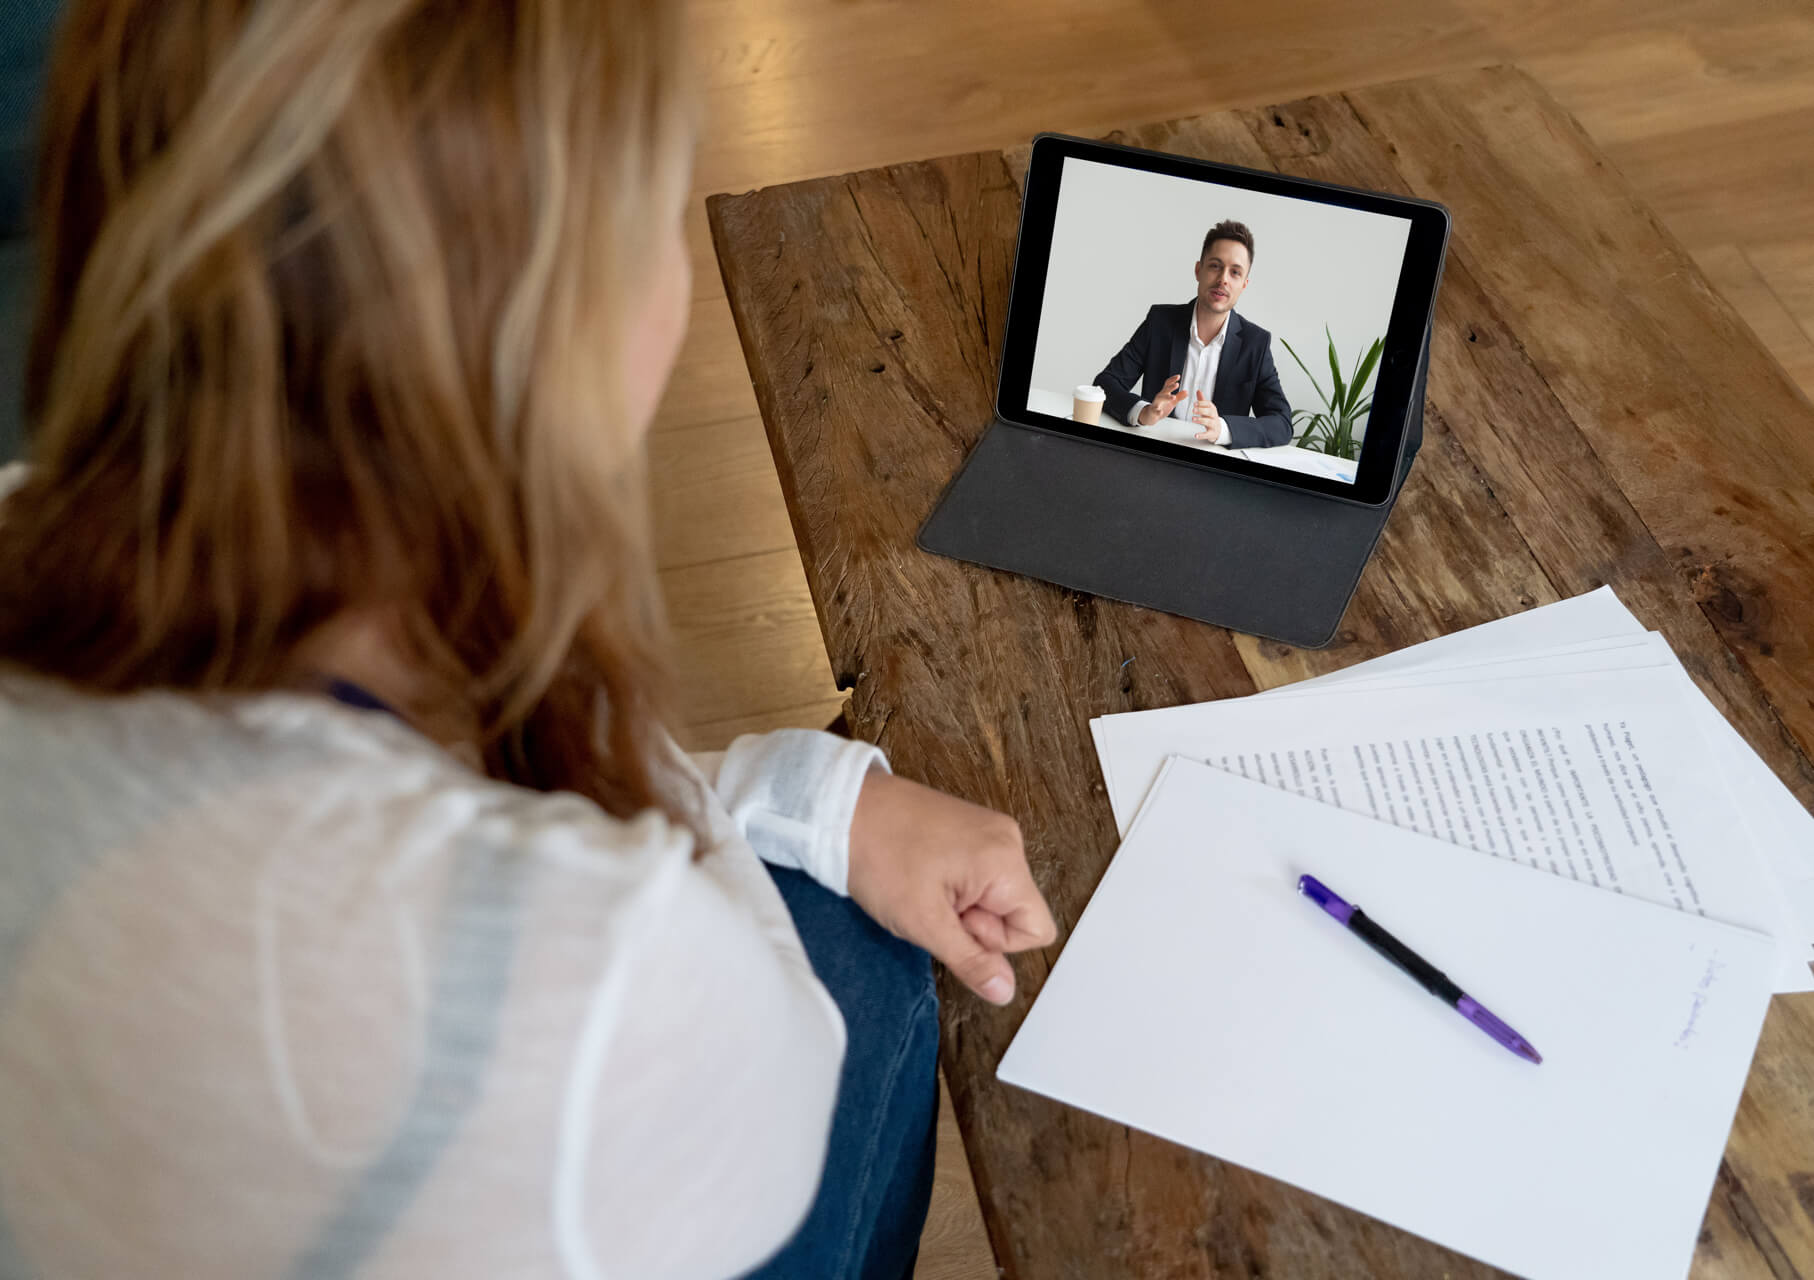 Professional on tablet video call with documents.